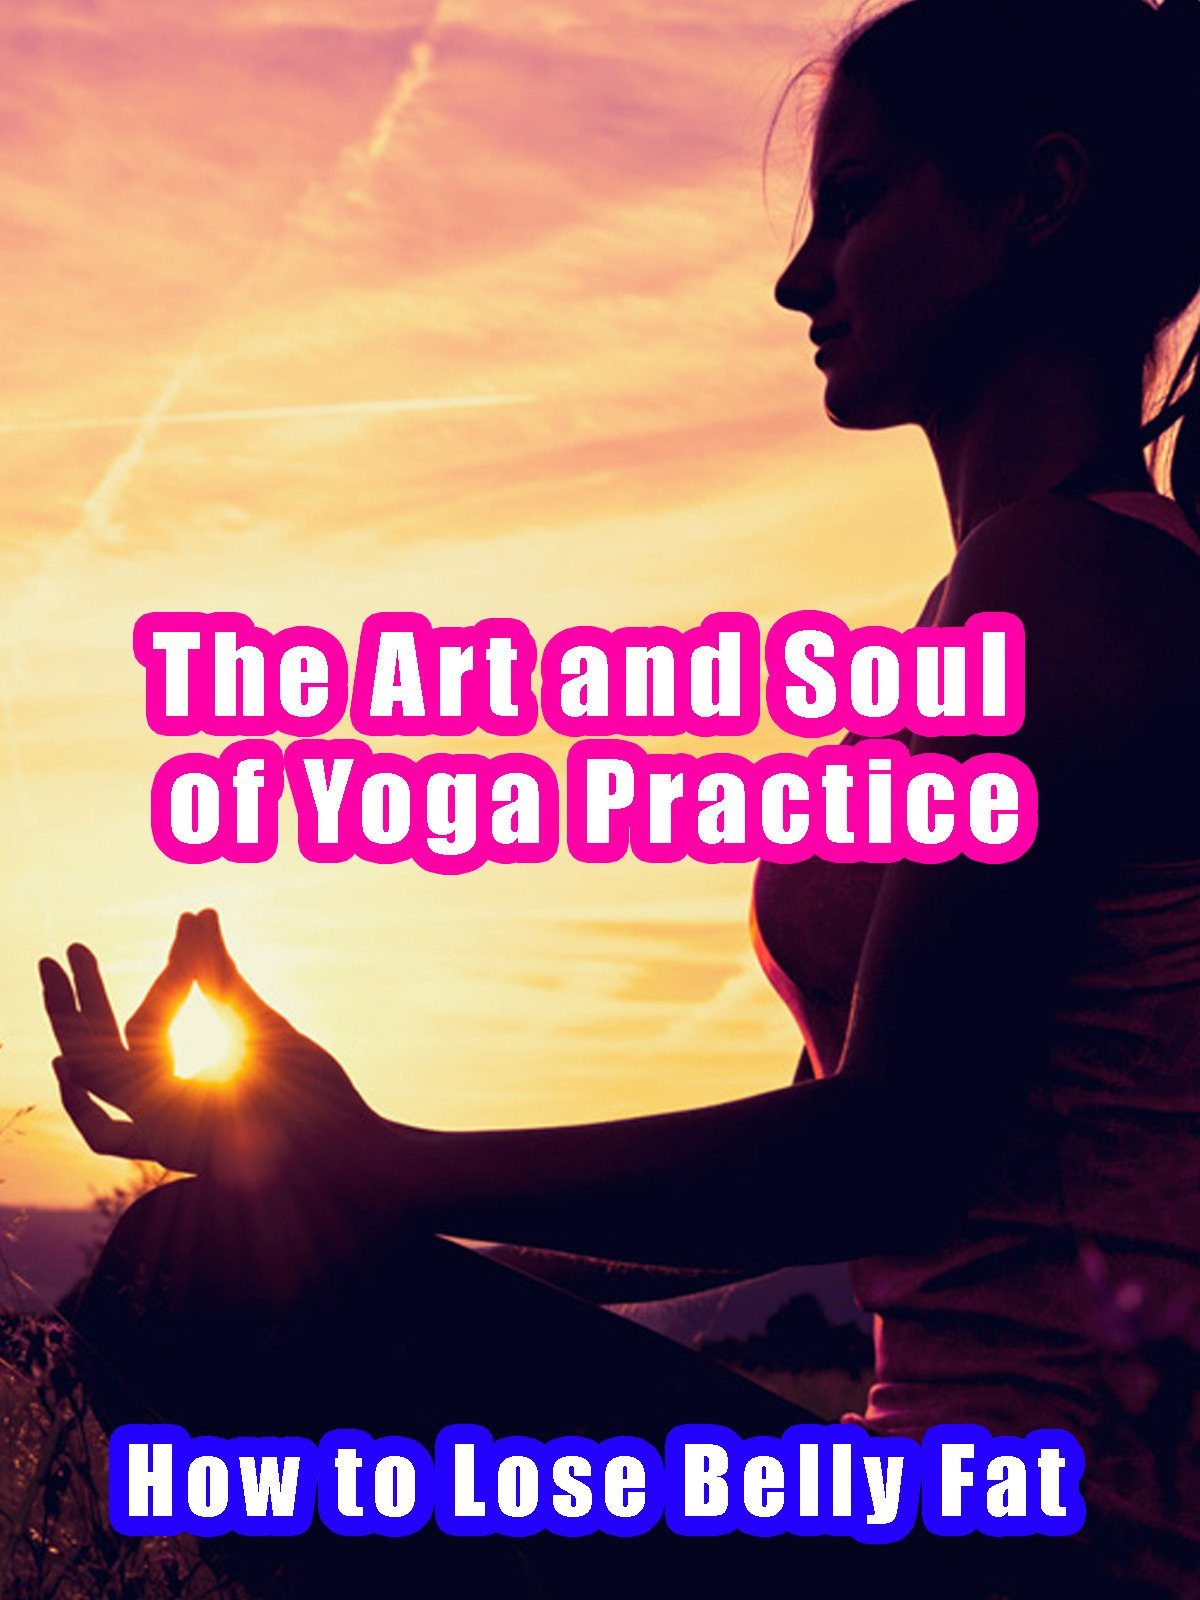 The Art and Soul of Yoga Practice - How to Lose Belly Fat